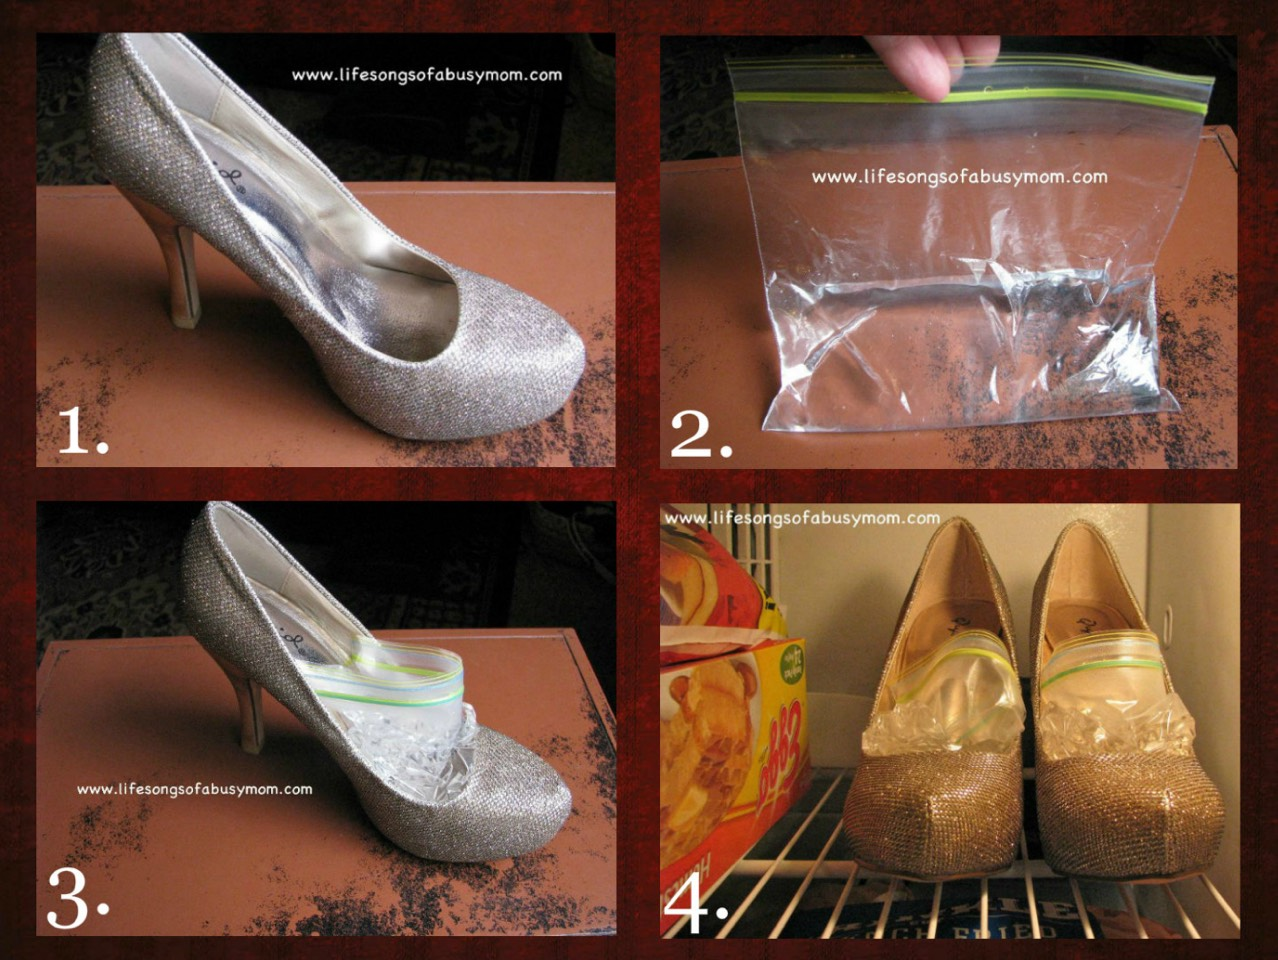 9. Stretch out tight shoes by placing a bag of water in each and leaving them in the freezer overnight.